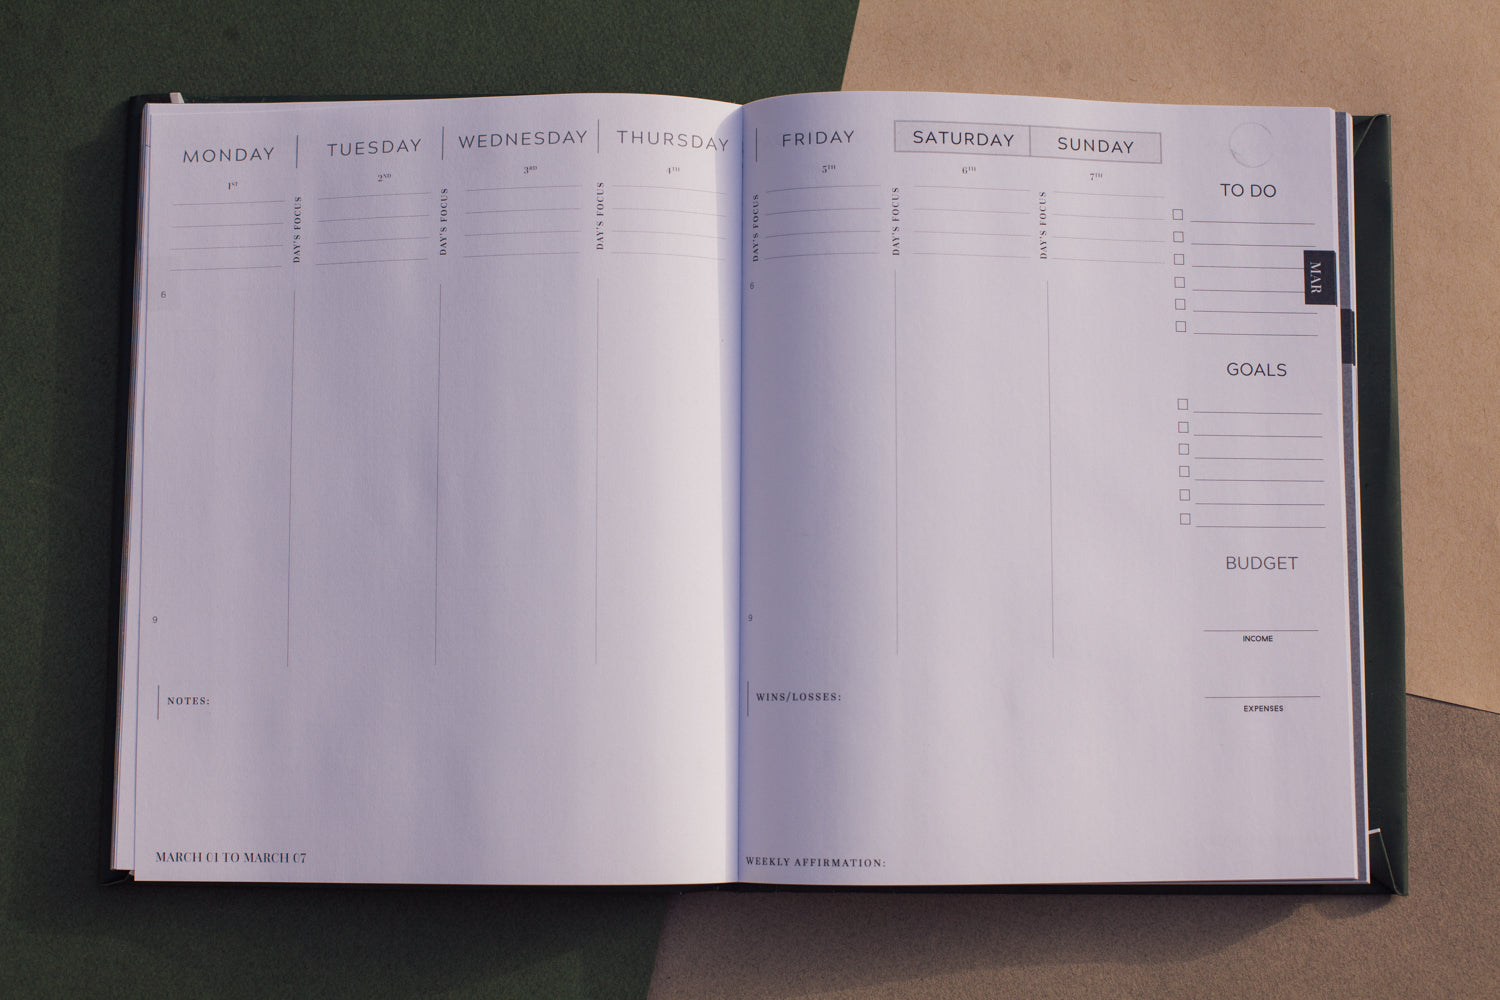 2021 Dated Annual Planner Weekly Spread